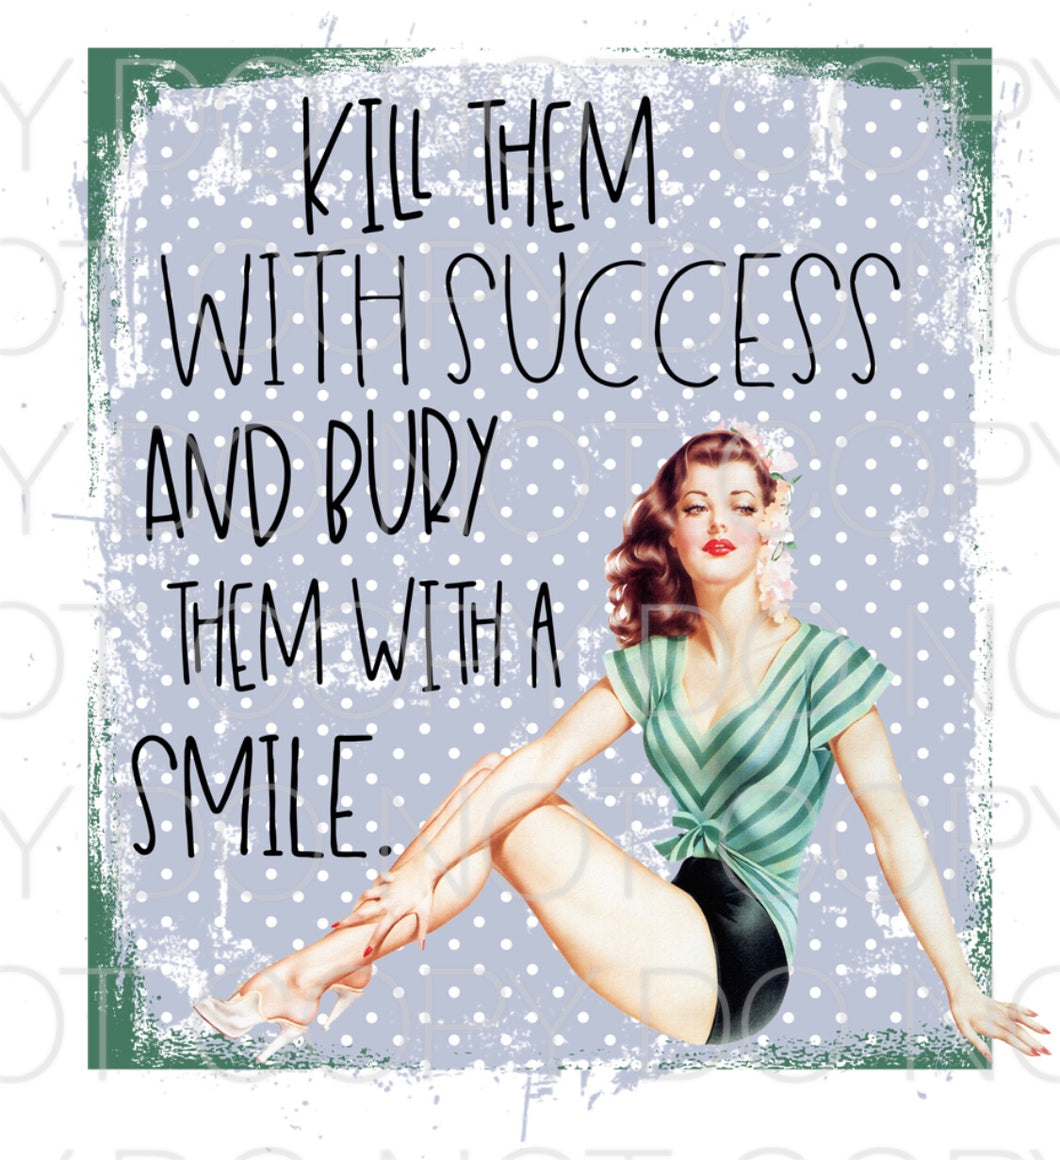 Kill them with success and bury them with a smile - Dye Sub Heat Transfer Sheet